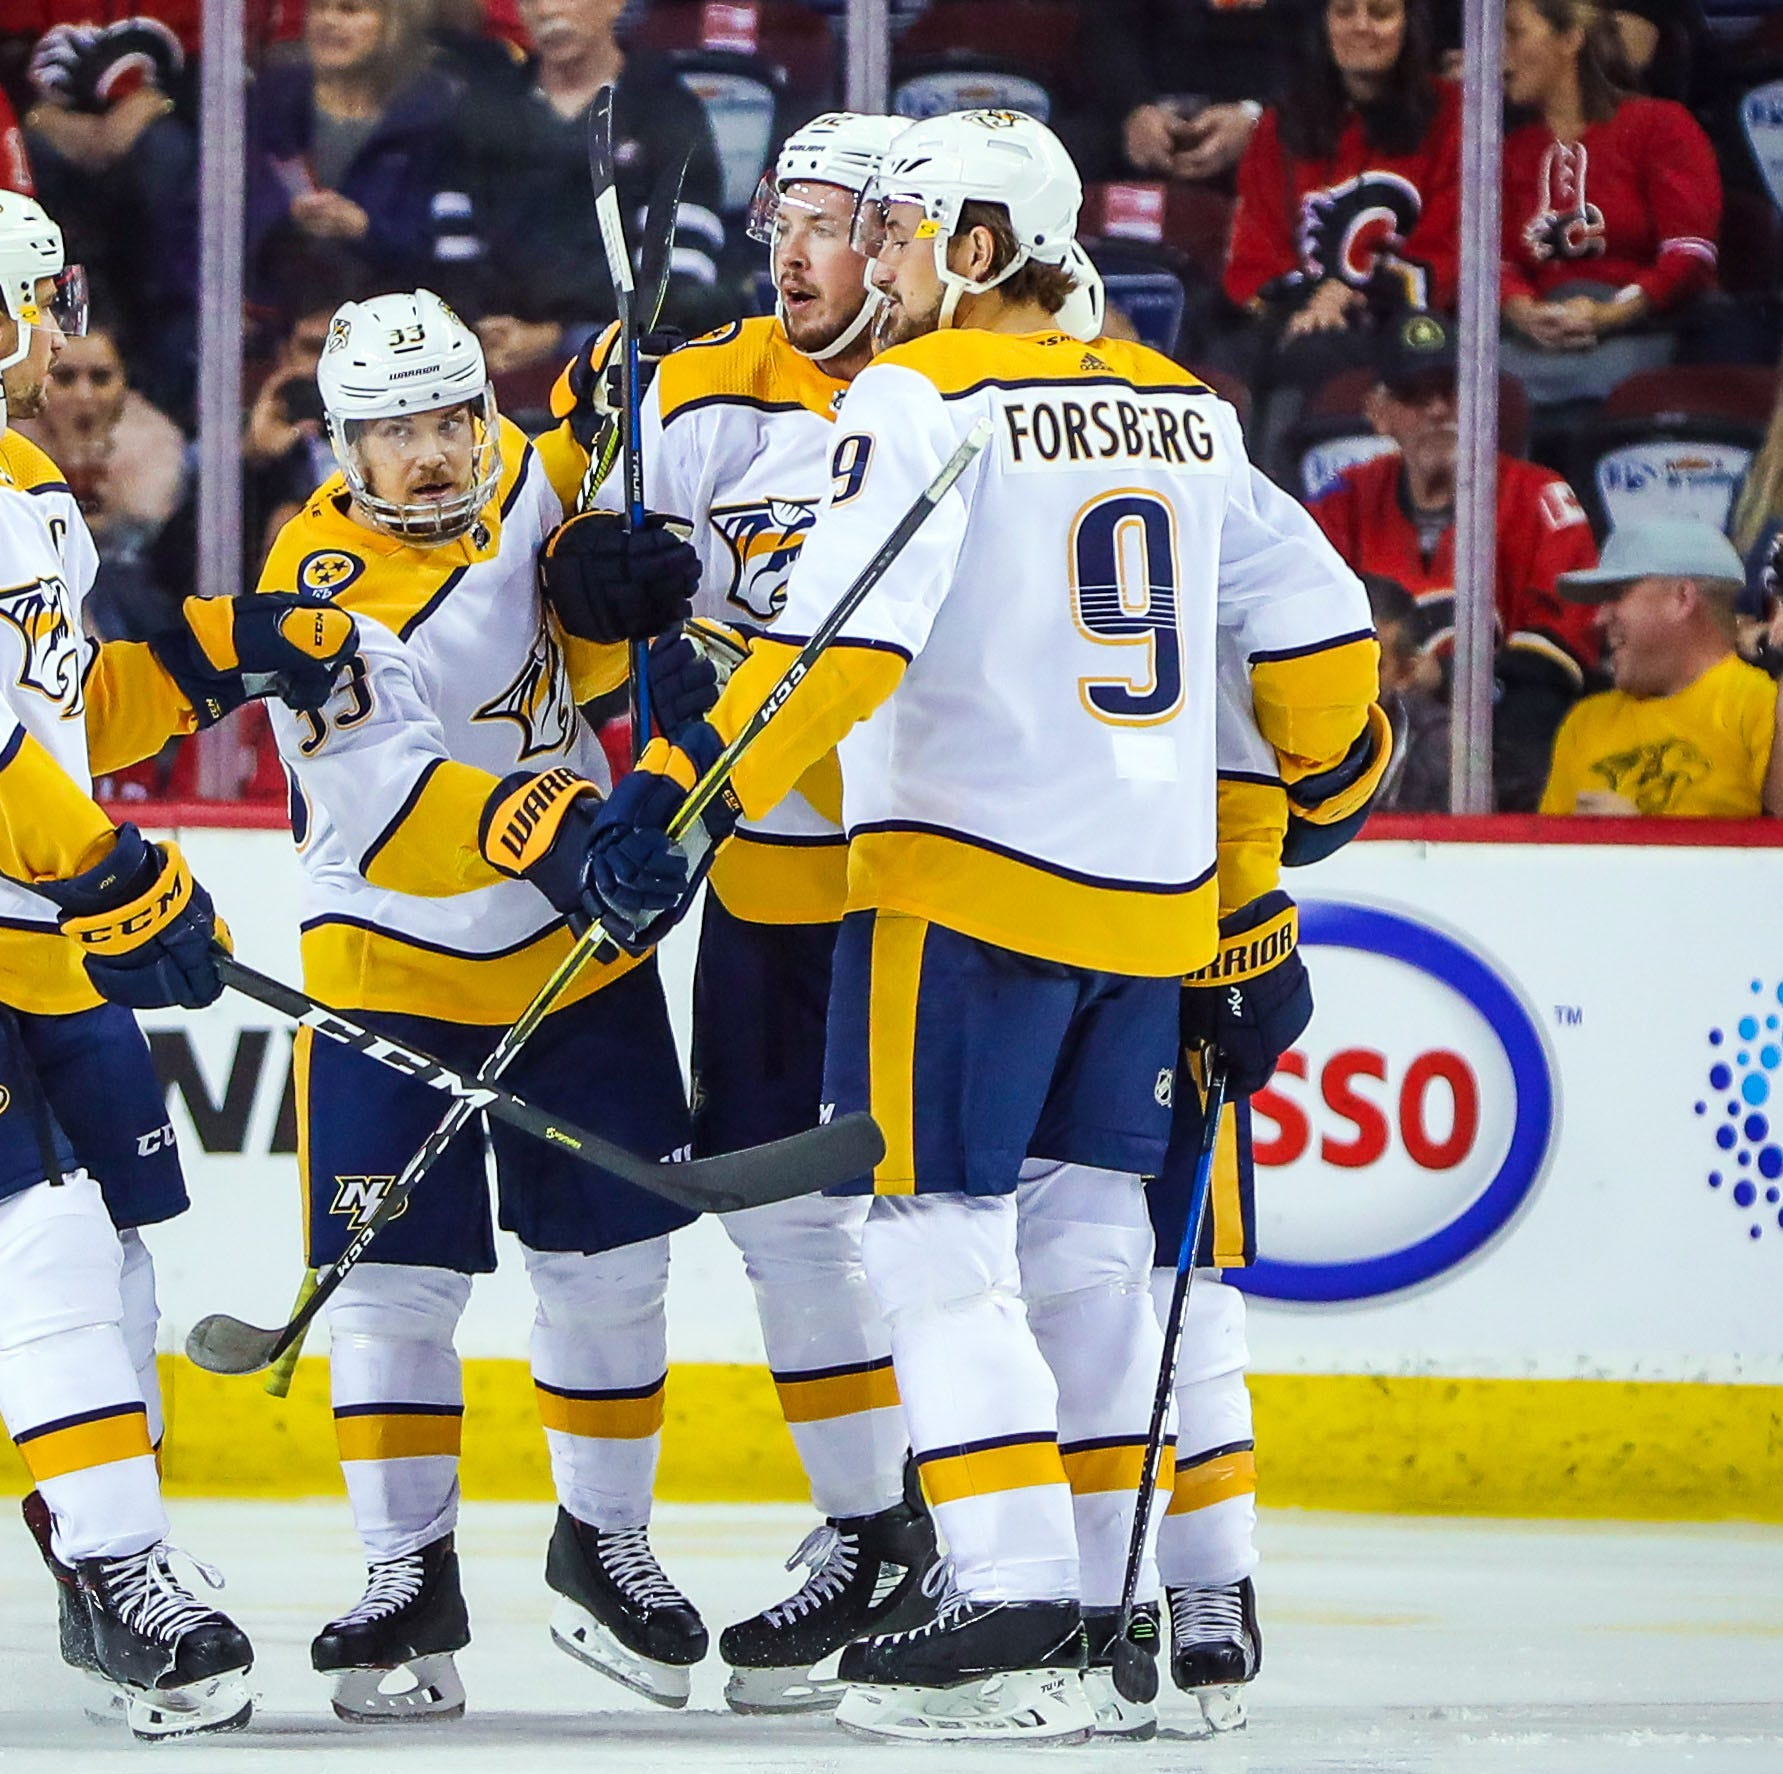 Friday's recap: Predators 5, Flames 3